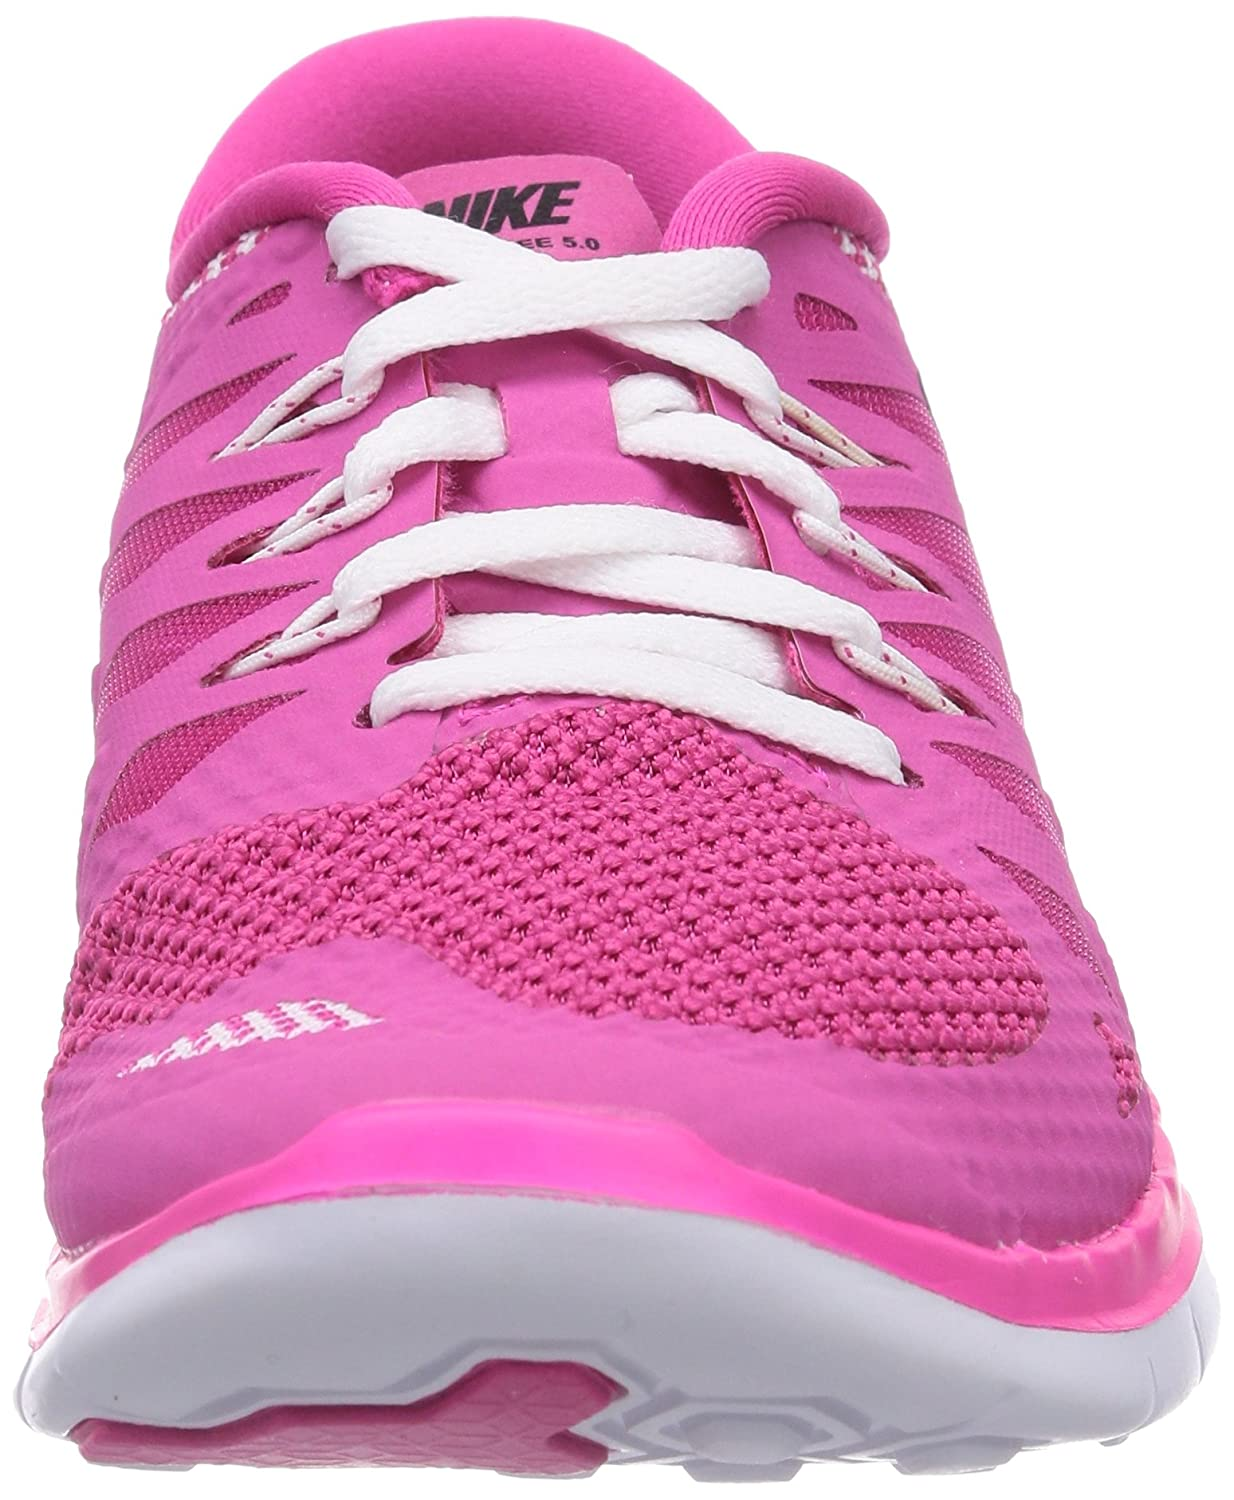 new style 63d9d 8a221 Nike Free 5.0, Running Entrainement Fille  Amazon.fr  Chaussures et Sacs